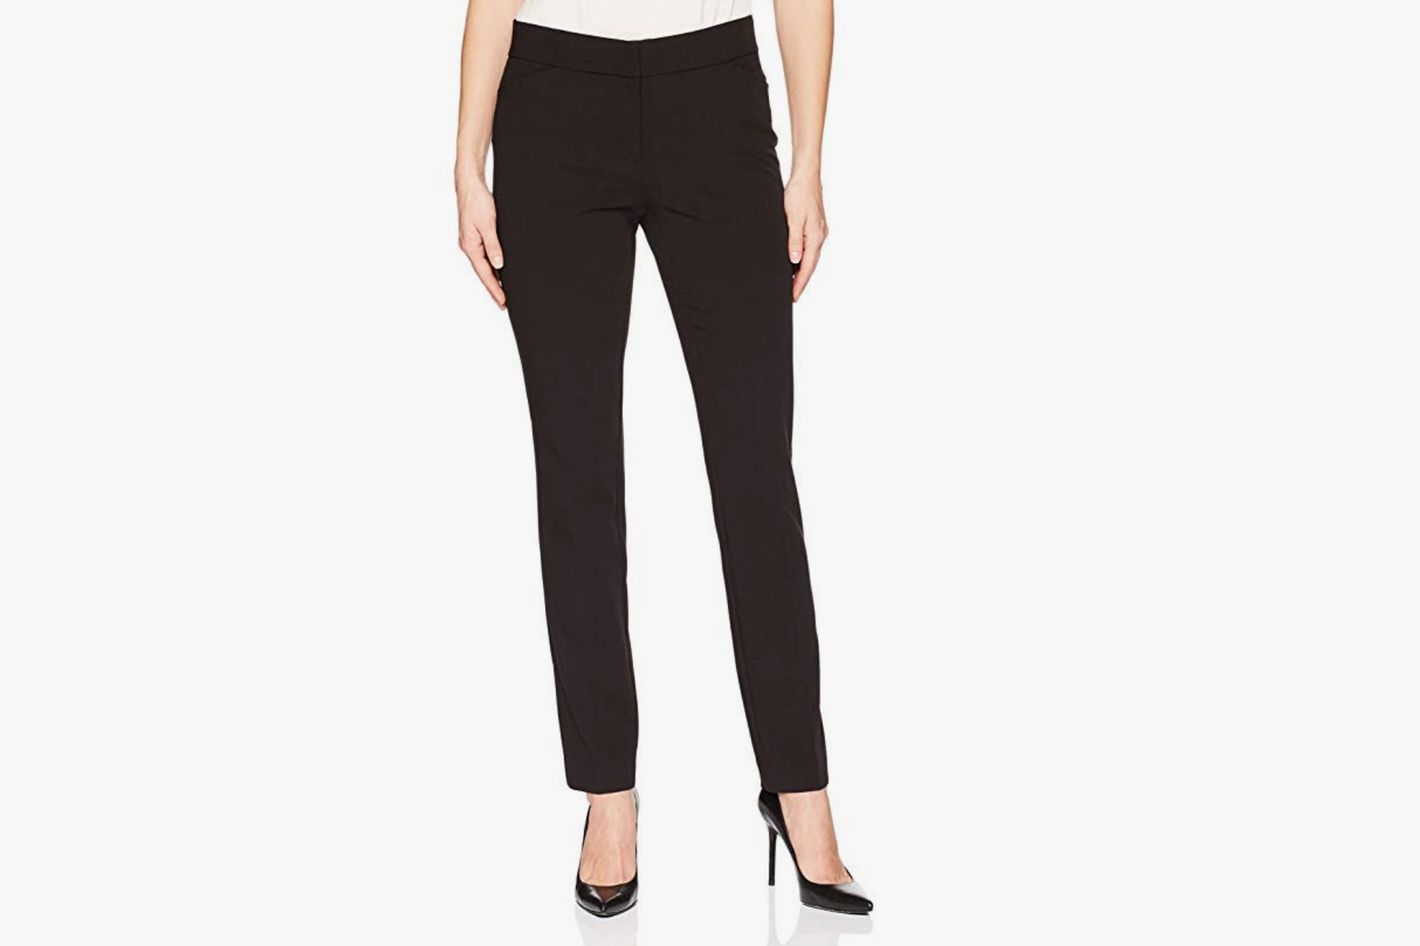 Lark & Ro Women's Straight Leg Trousers